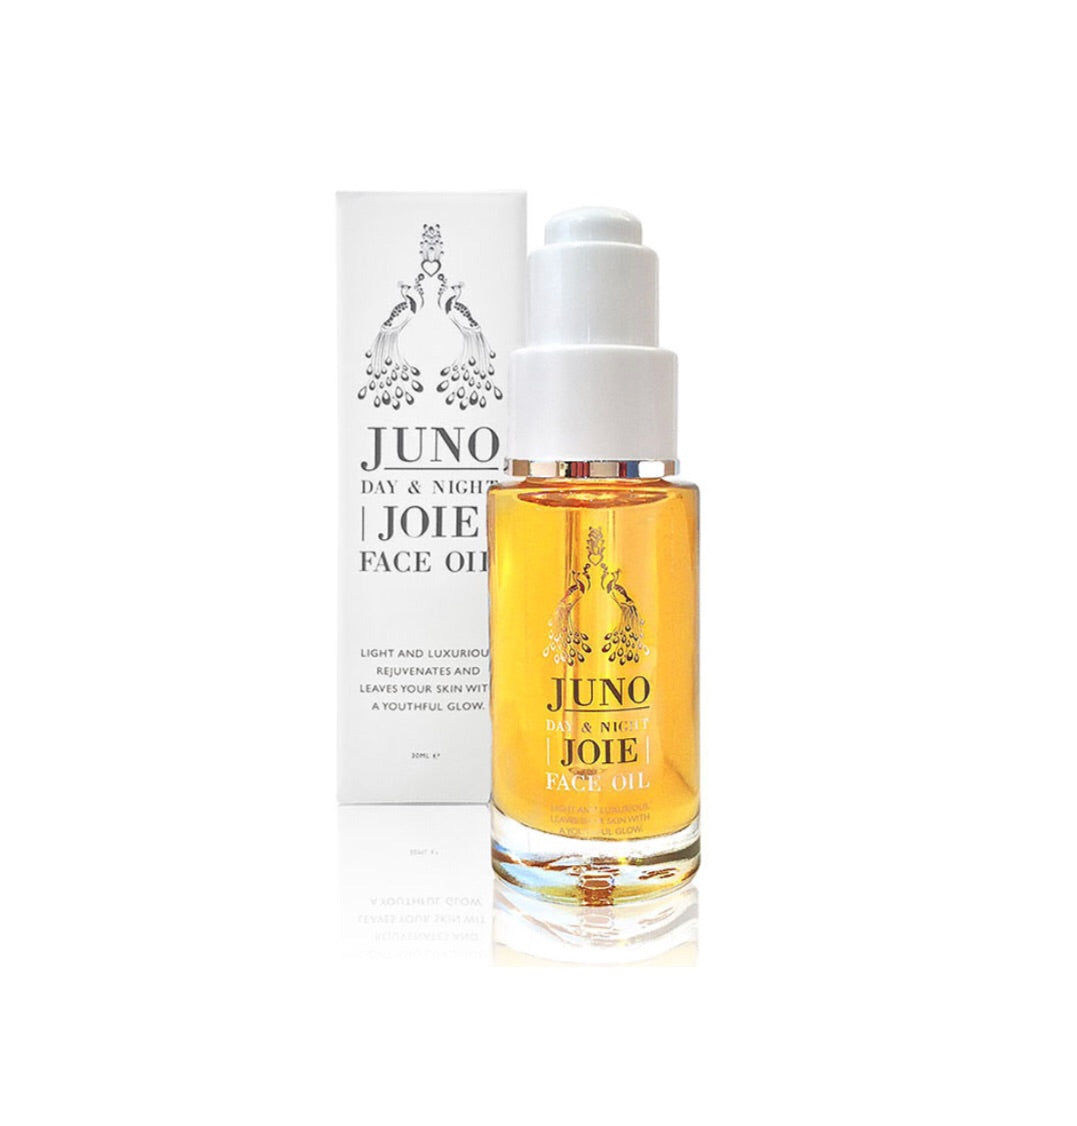 Juno - Joie face oil